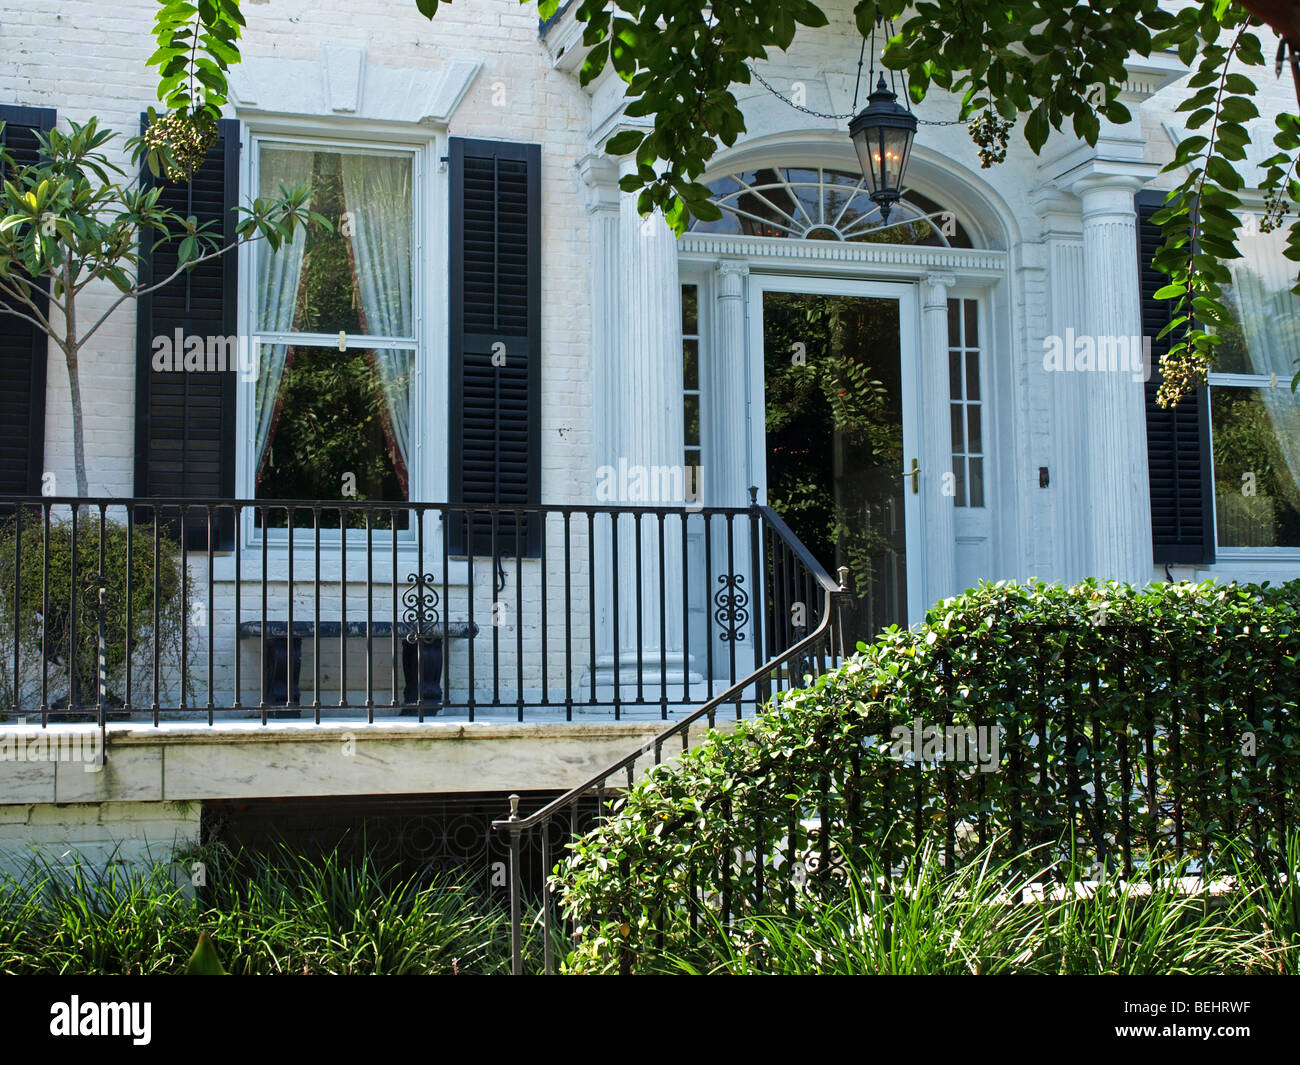 front entrance to historic house with columns windows and iron rail with bushes - Stock Image